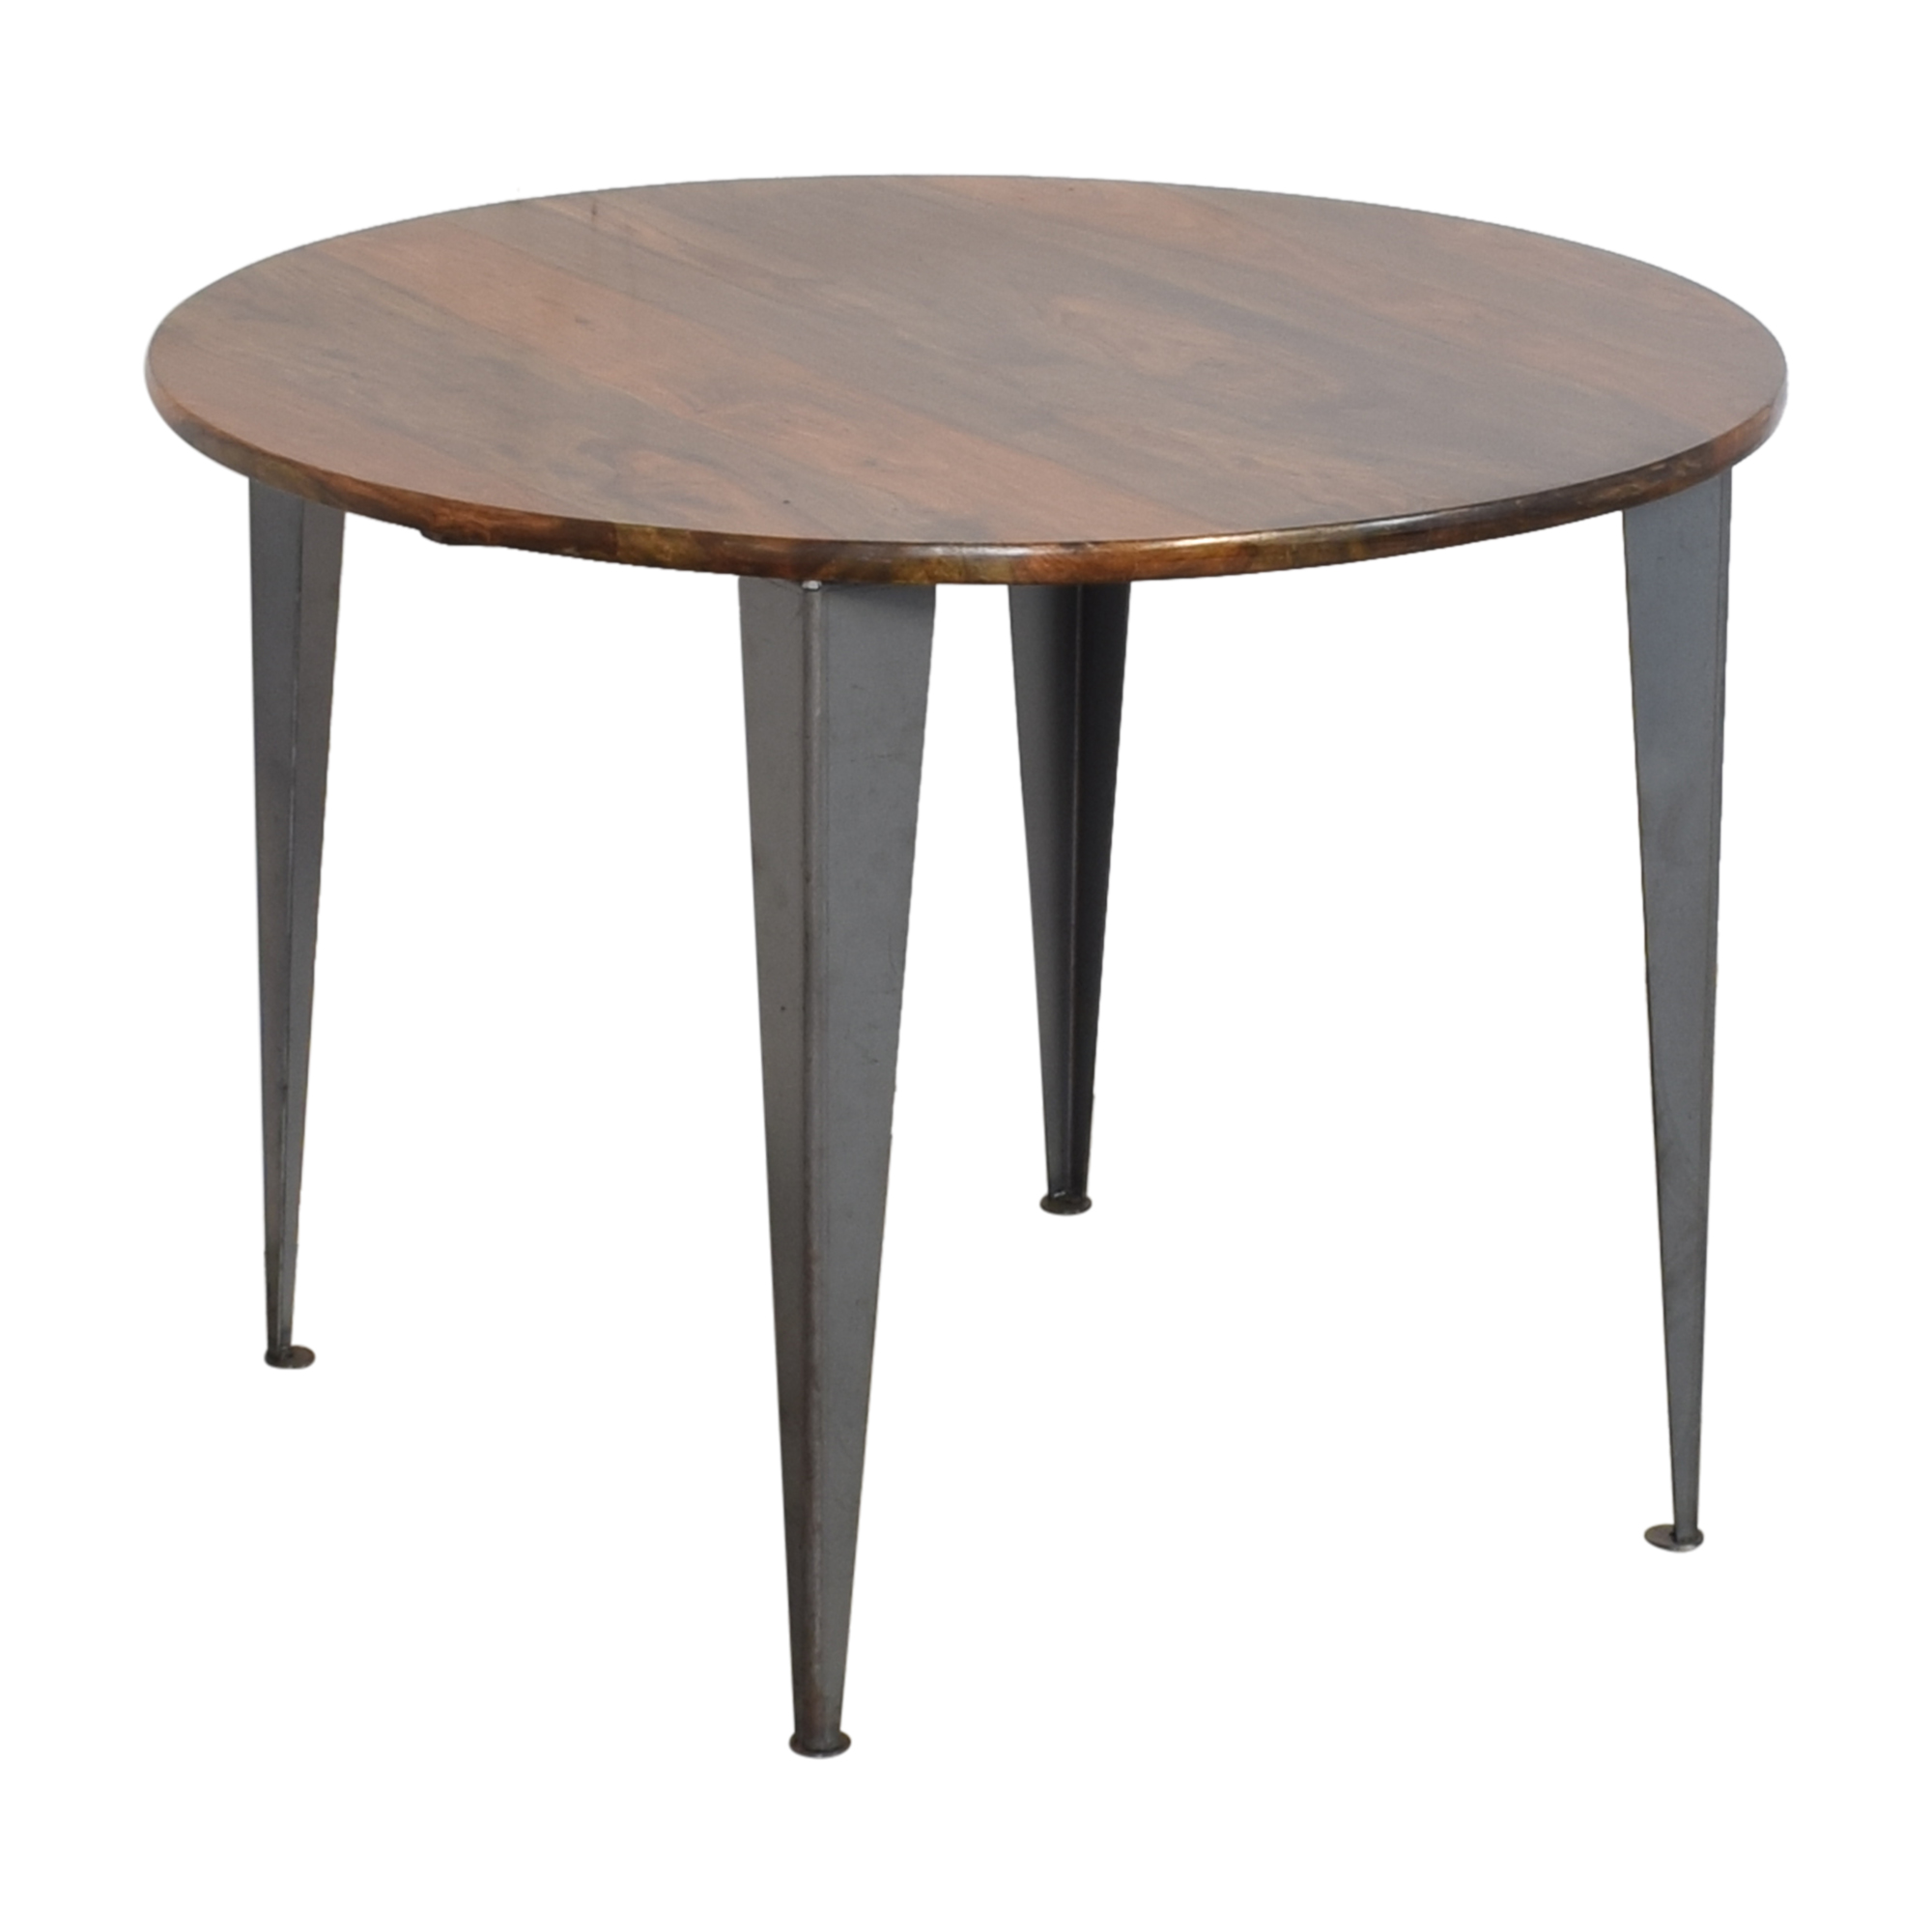 Brownstone Furniture Brownstone Furniture Round Dining Table Tables